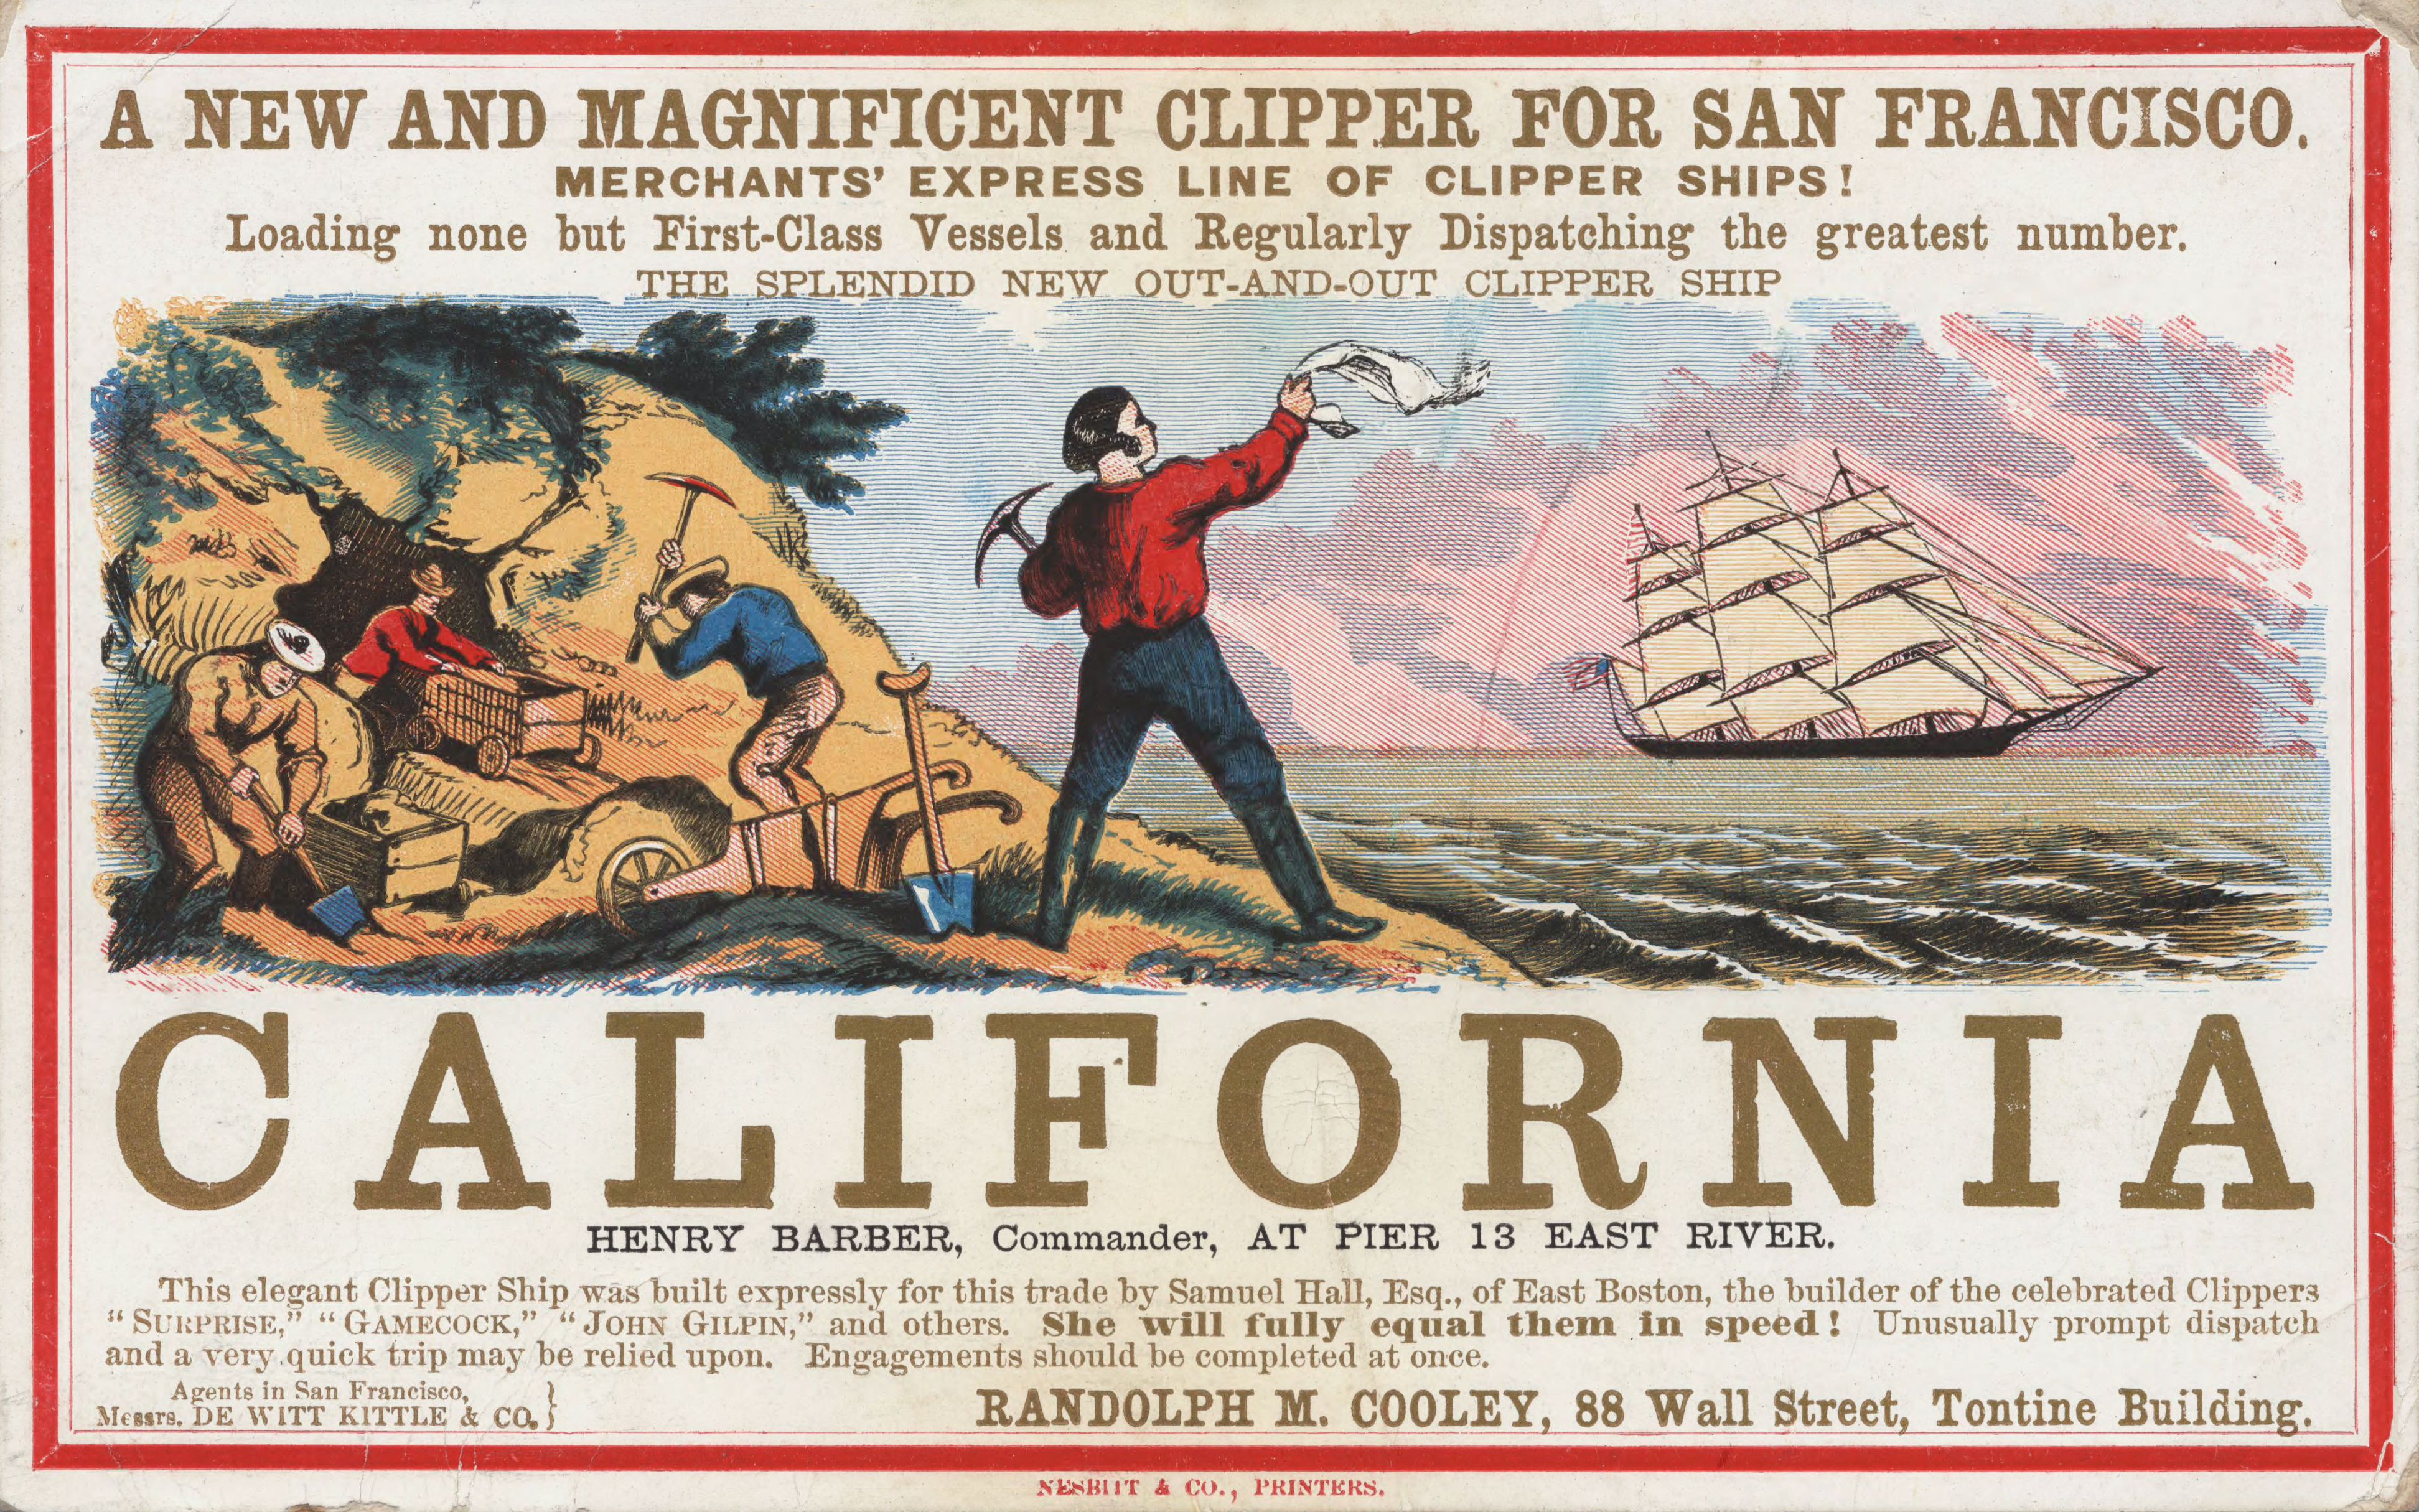 Sailing to California during the Gold Rush